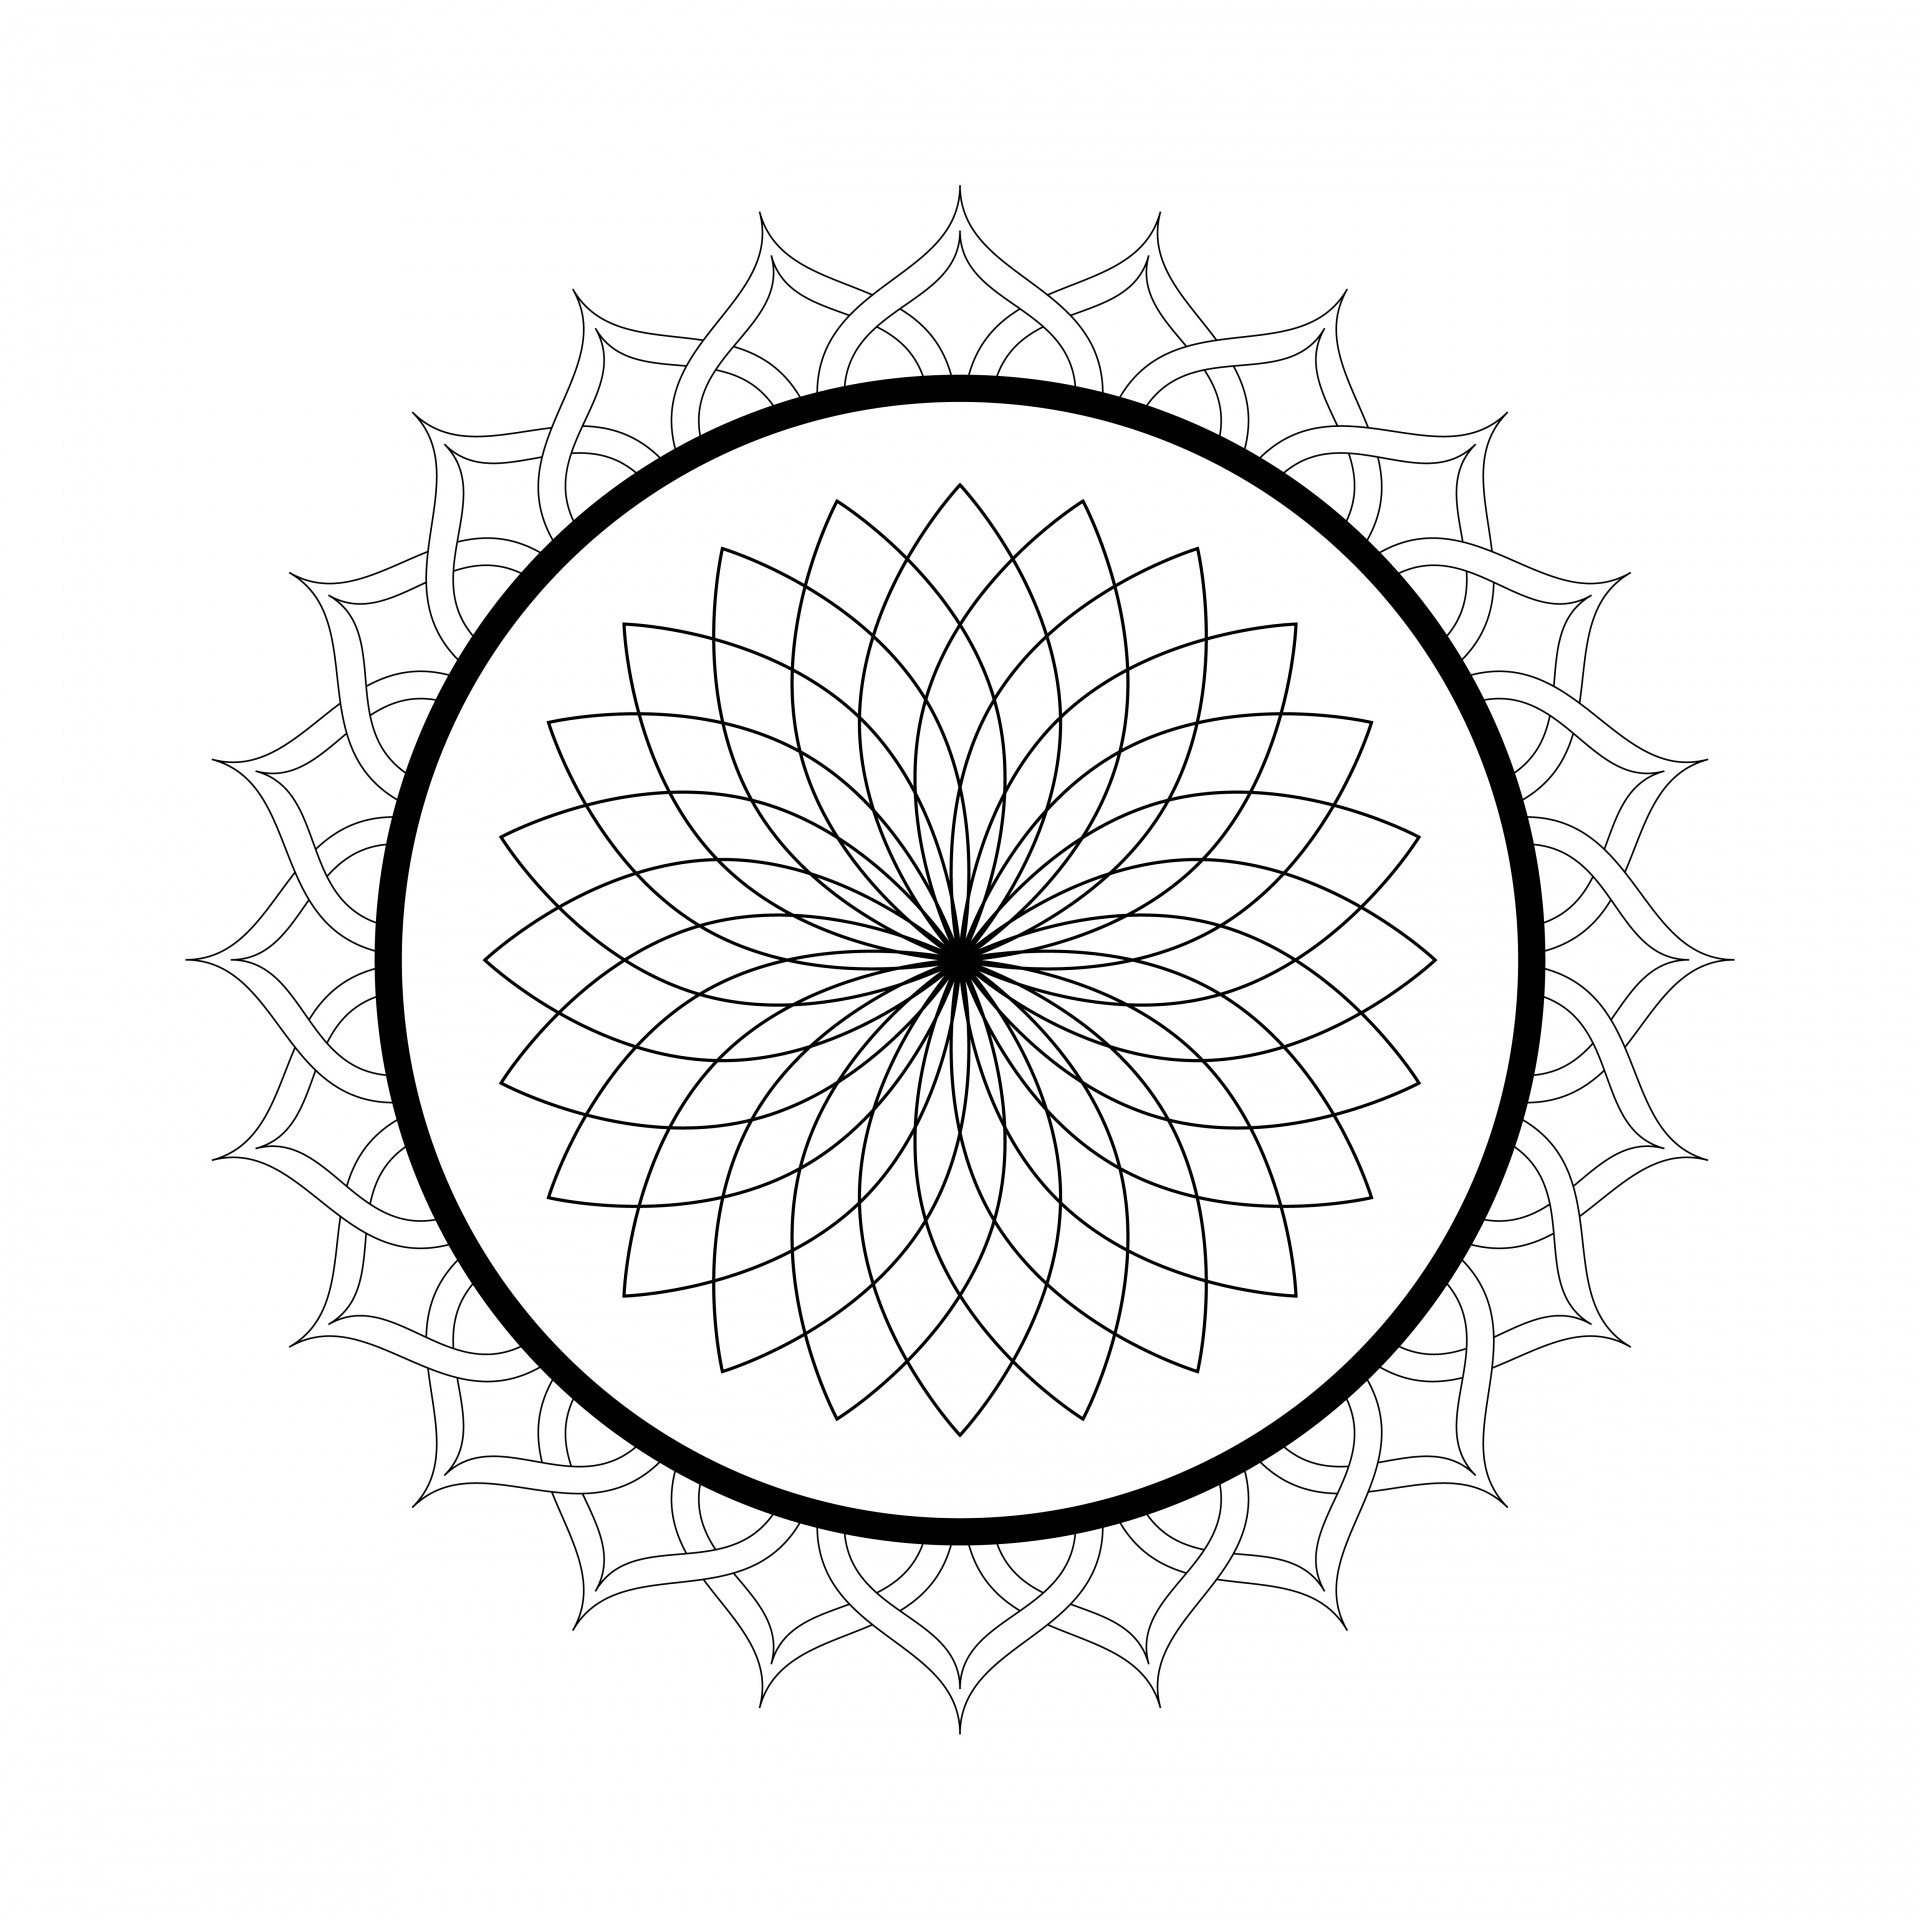 mandalas to color for adults mandala butterflies and flowers malas adult coloring pages mandalas color for to adults